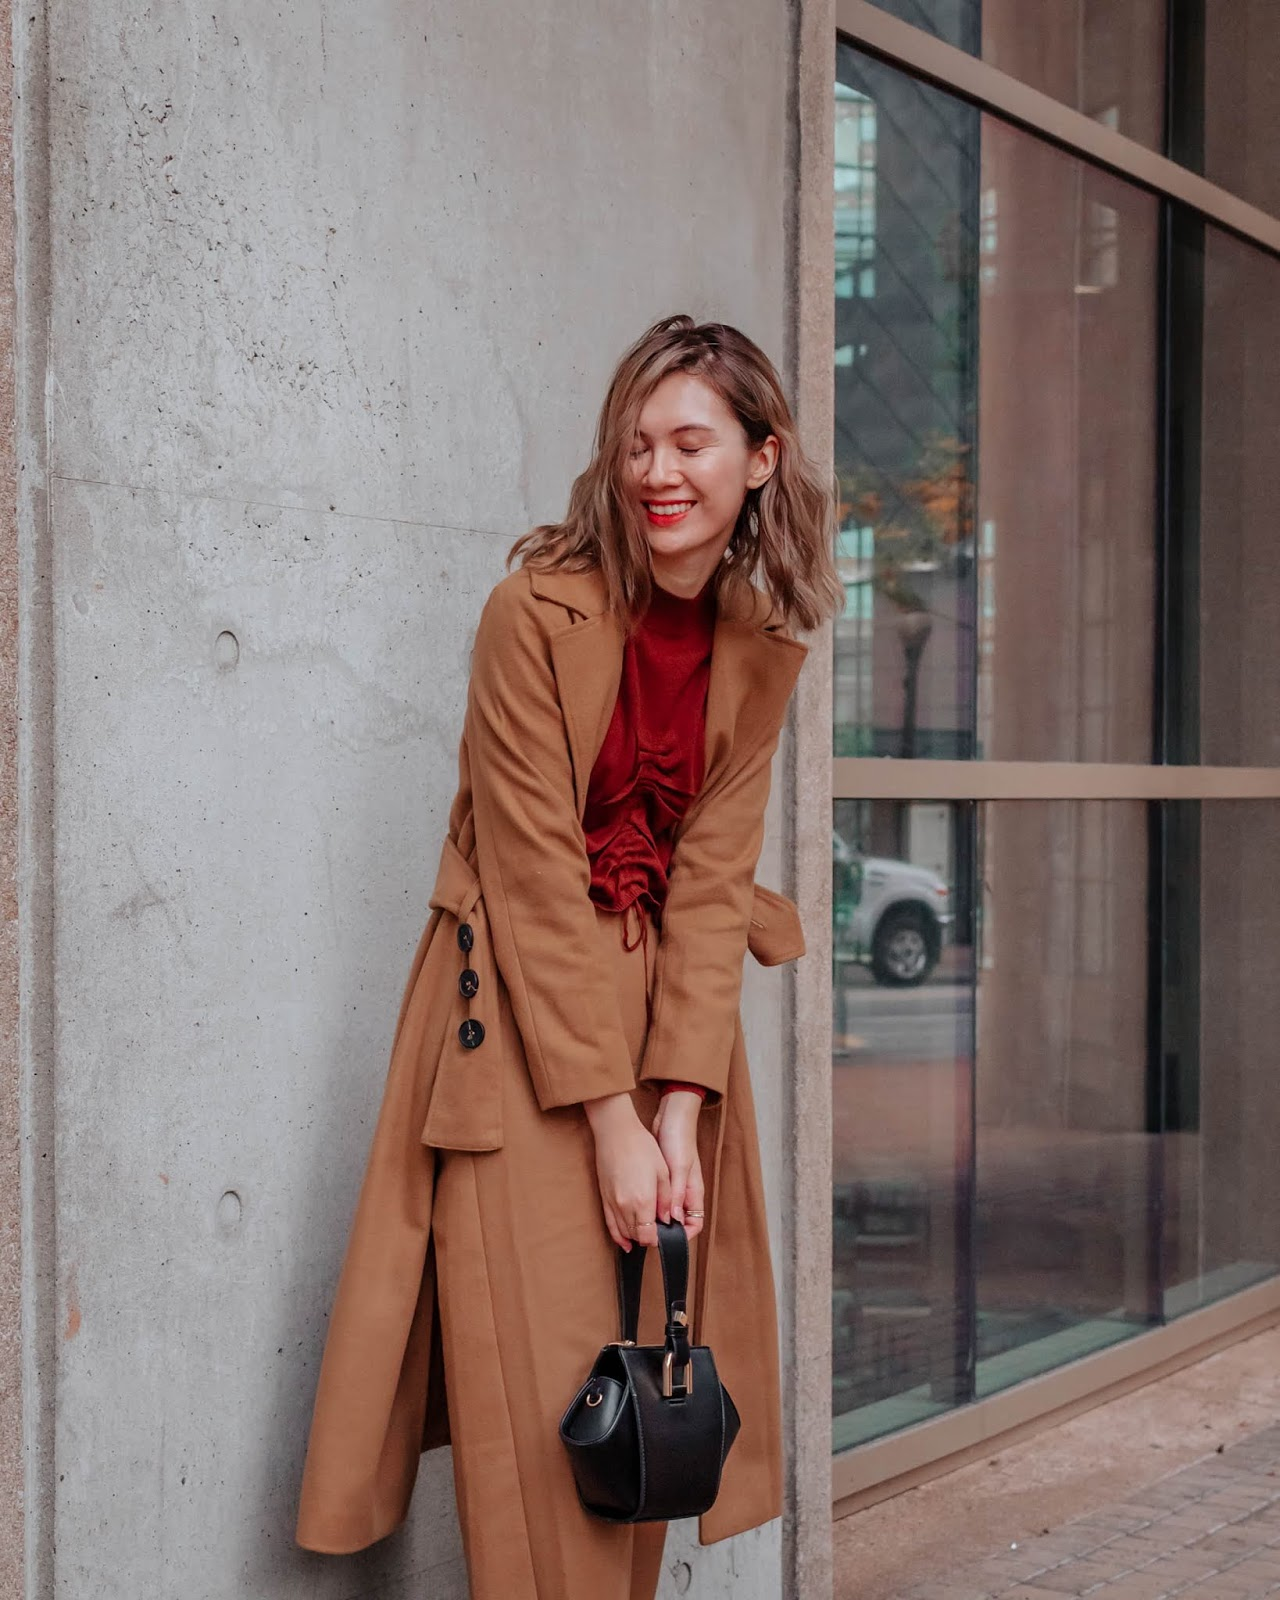 Camel tones, vancouver blogger, fall trends, fall 2018 trends, camel coat, cozy outfit for winter, fall outfit, fall style, canadian style, canadian fashion blogger, mango, les dantes purse, chriselle lim collaction,  cropped sweater